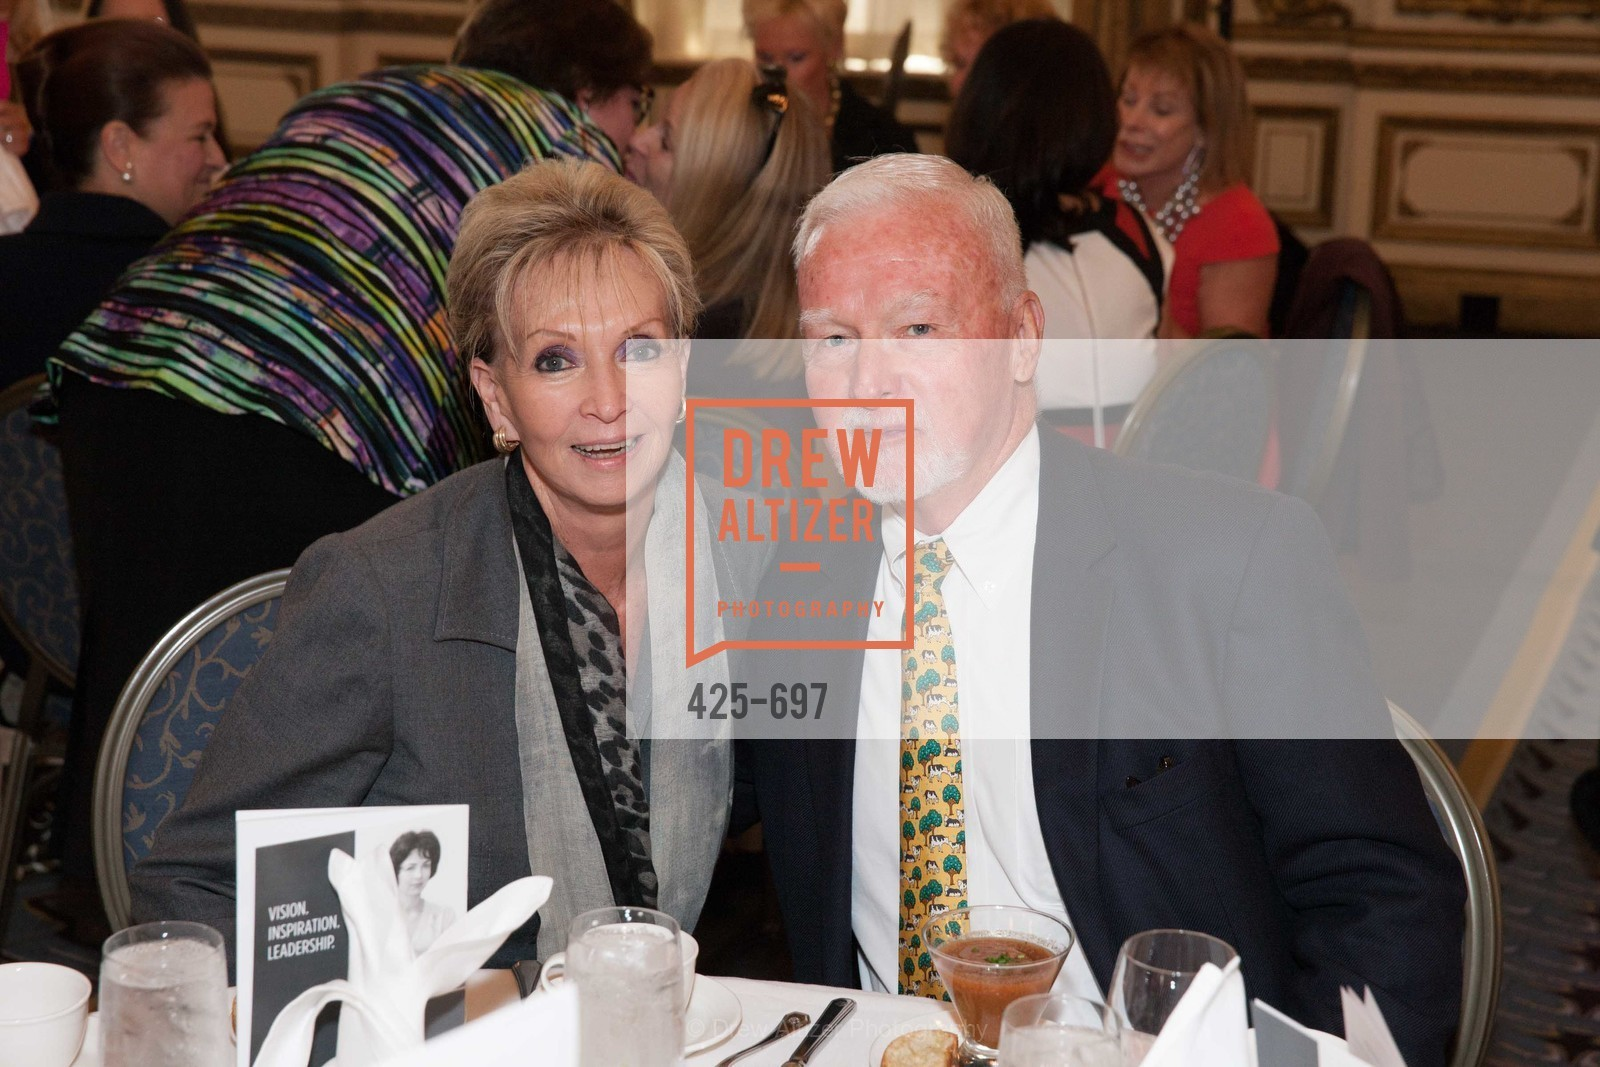 Sallie Huntting, Sam Leftwich, JUNIOR LEAGUE OF SAN FRANCISCO's WATCH Luncheon, US, May 4th, 2015,Drew Altizer, Drew Altizer Photography, full-service agency, private events, San Francisco photographer, photographer california